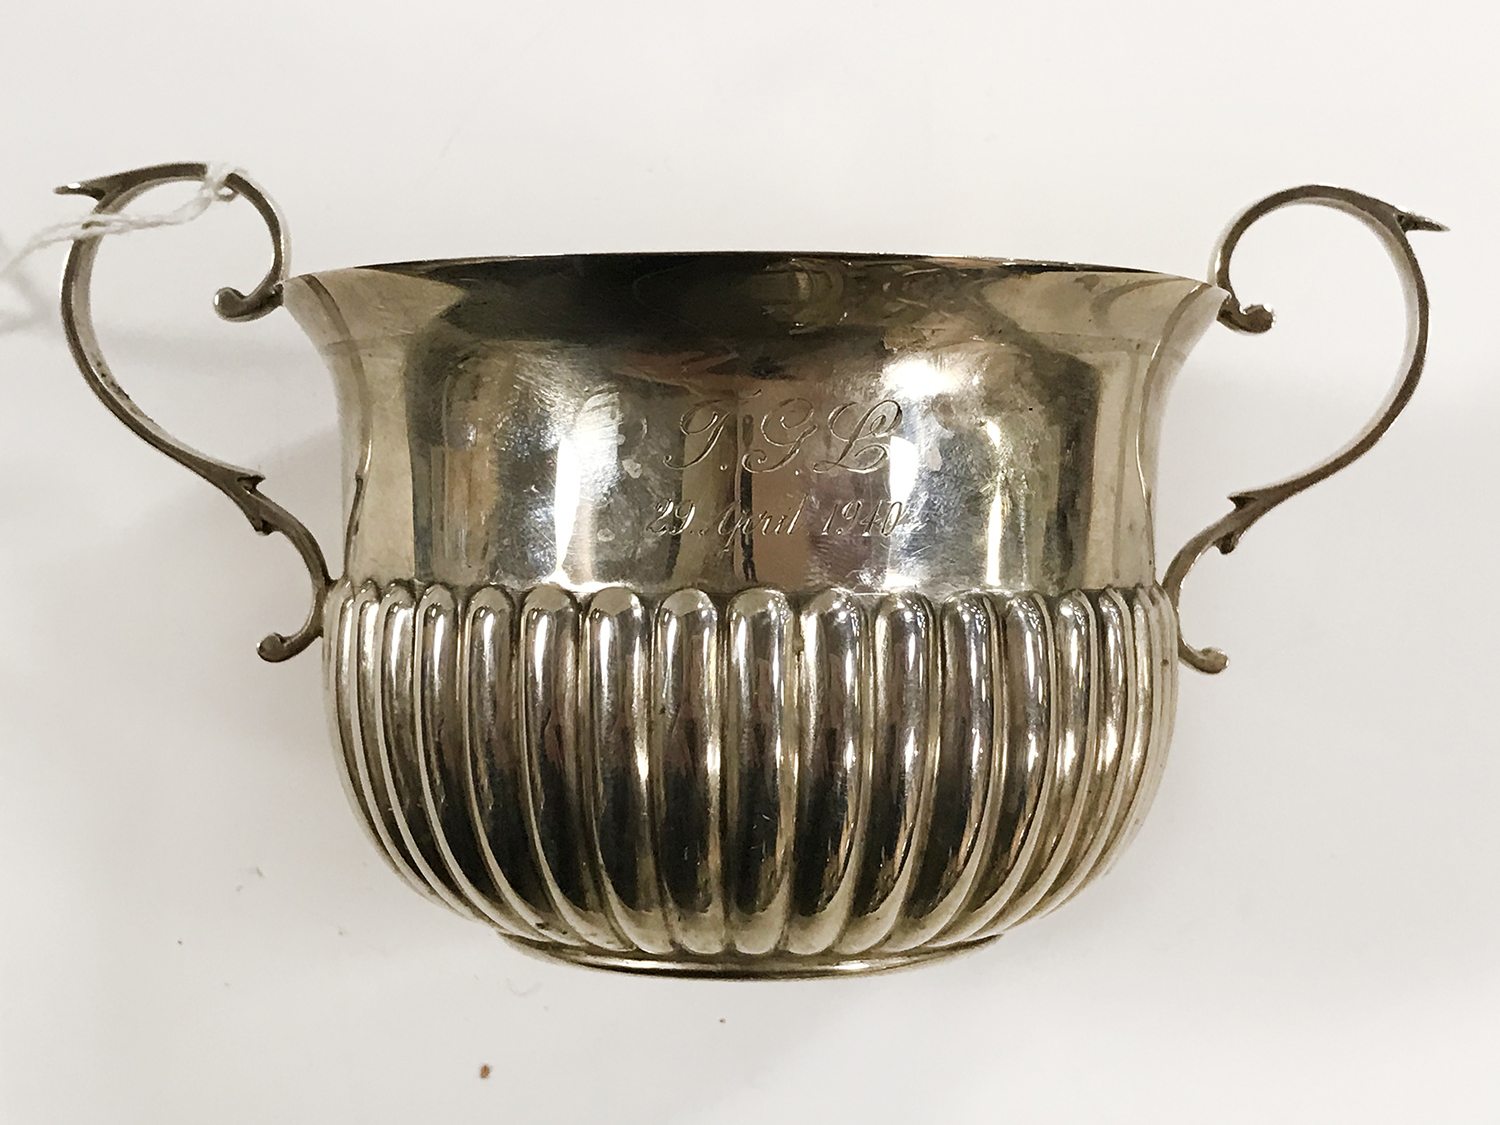 HM SILVER TWIN HANDLED SUGAR BOWL - Image 5 of 5